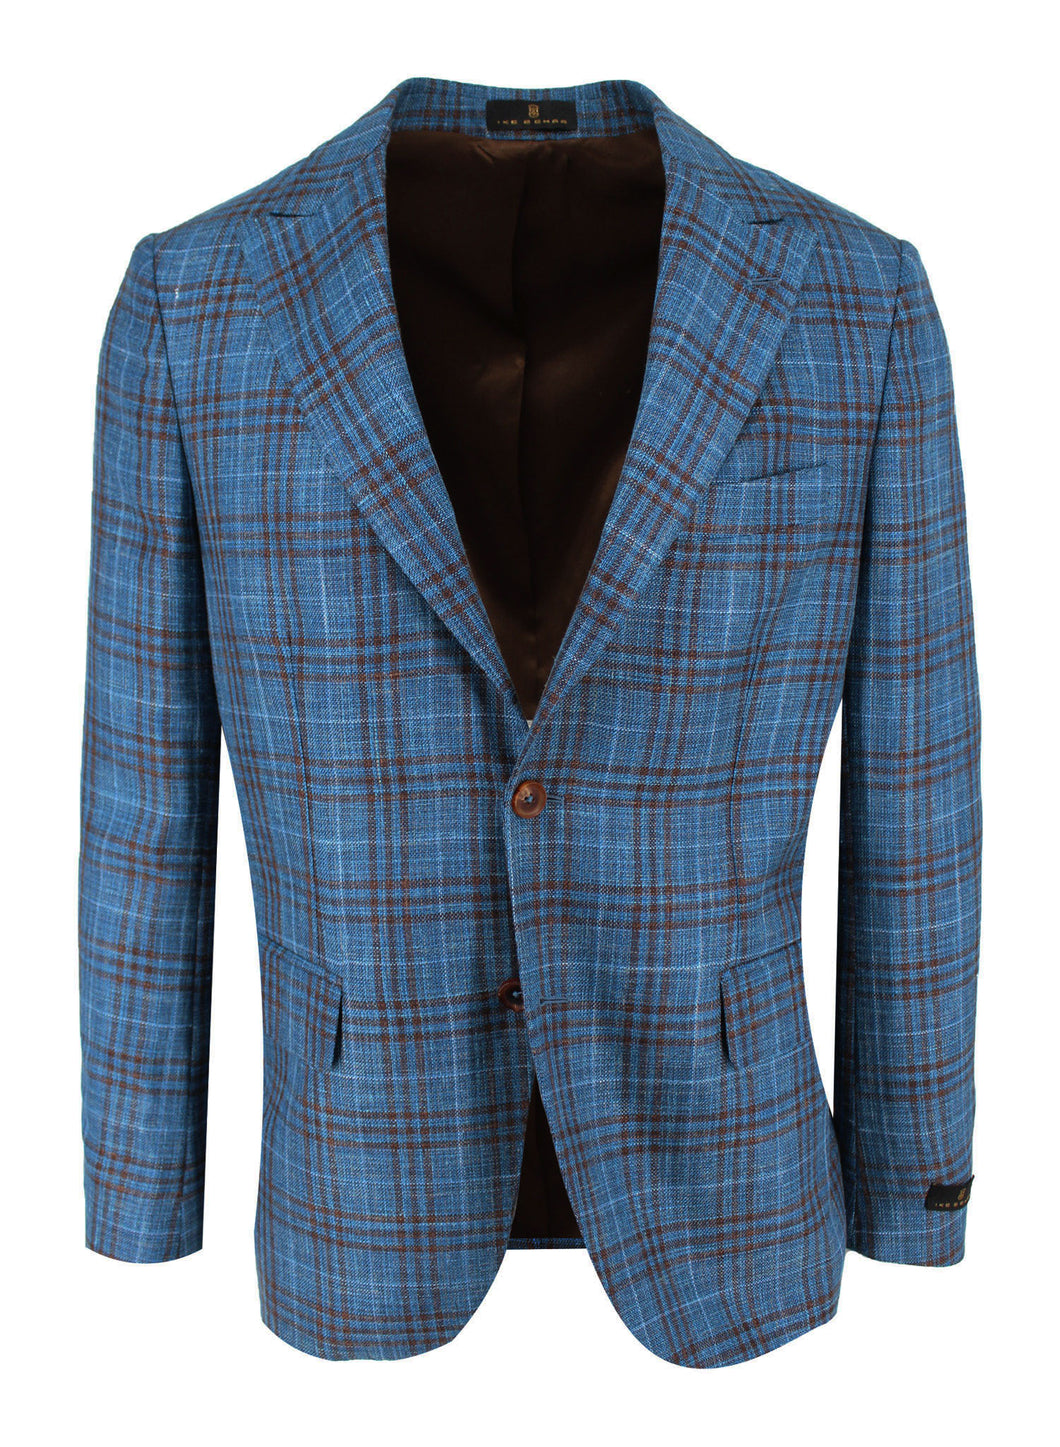 Teal with Chocolate Multi-Check Sport Coat